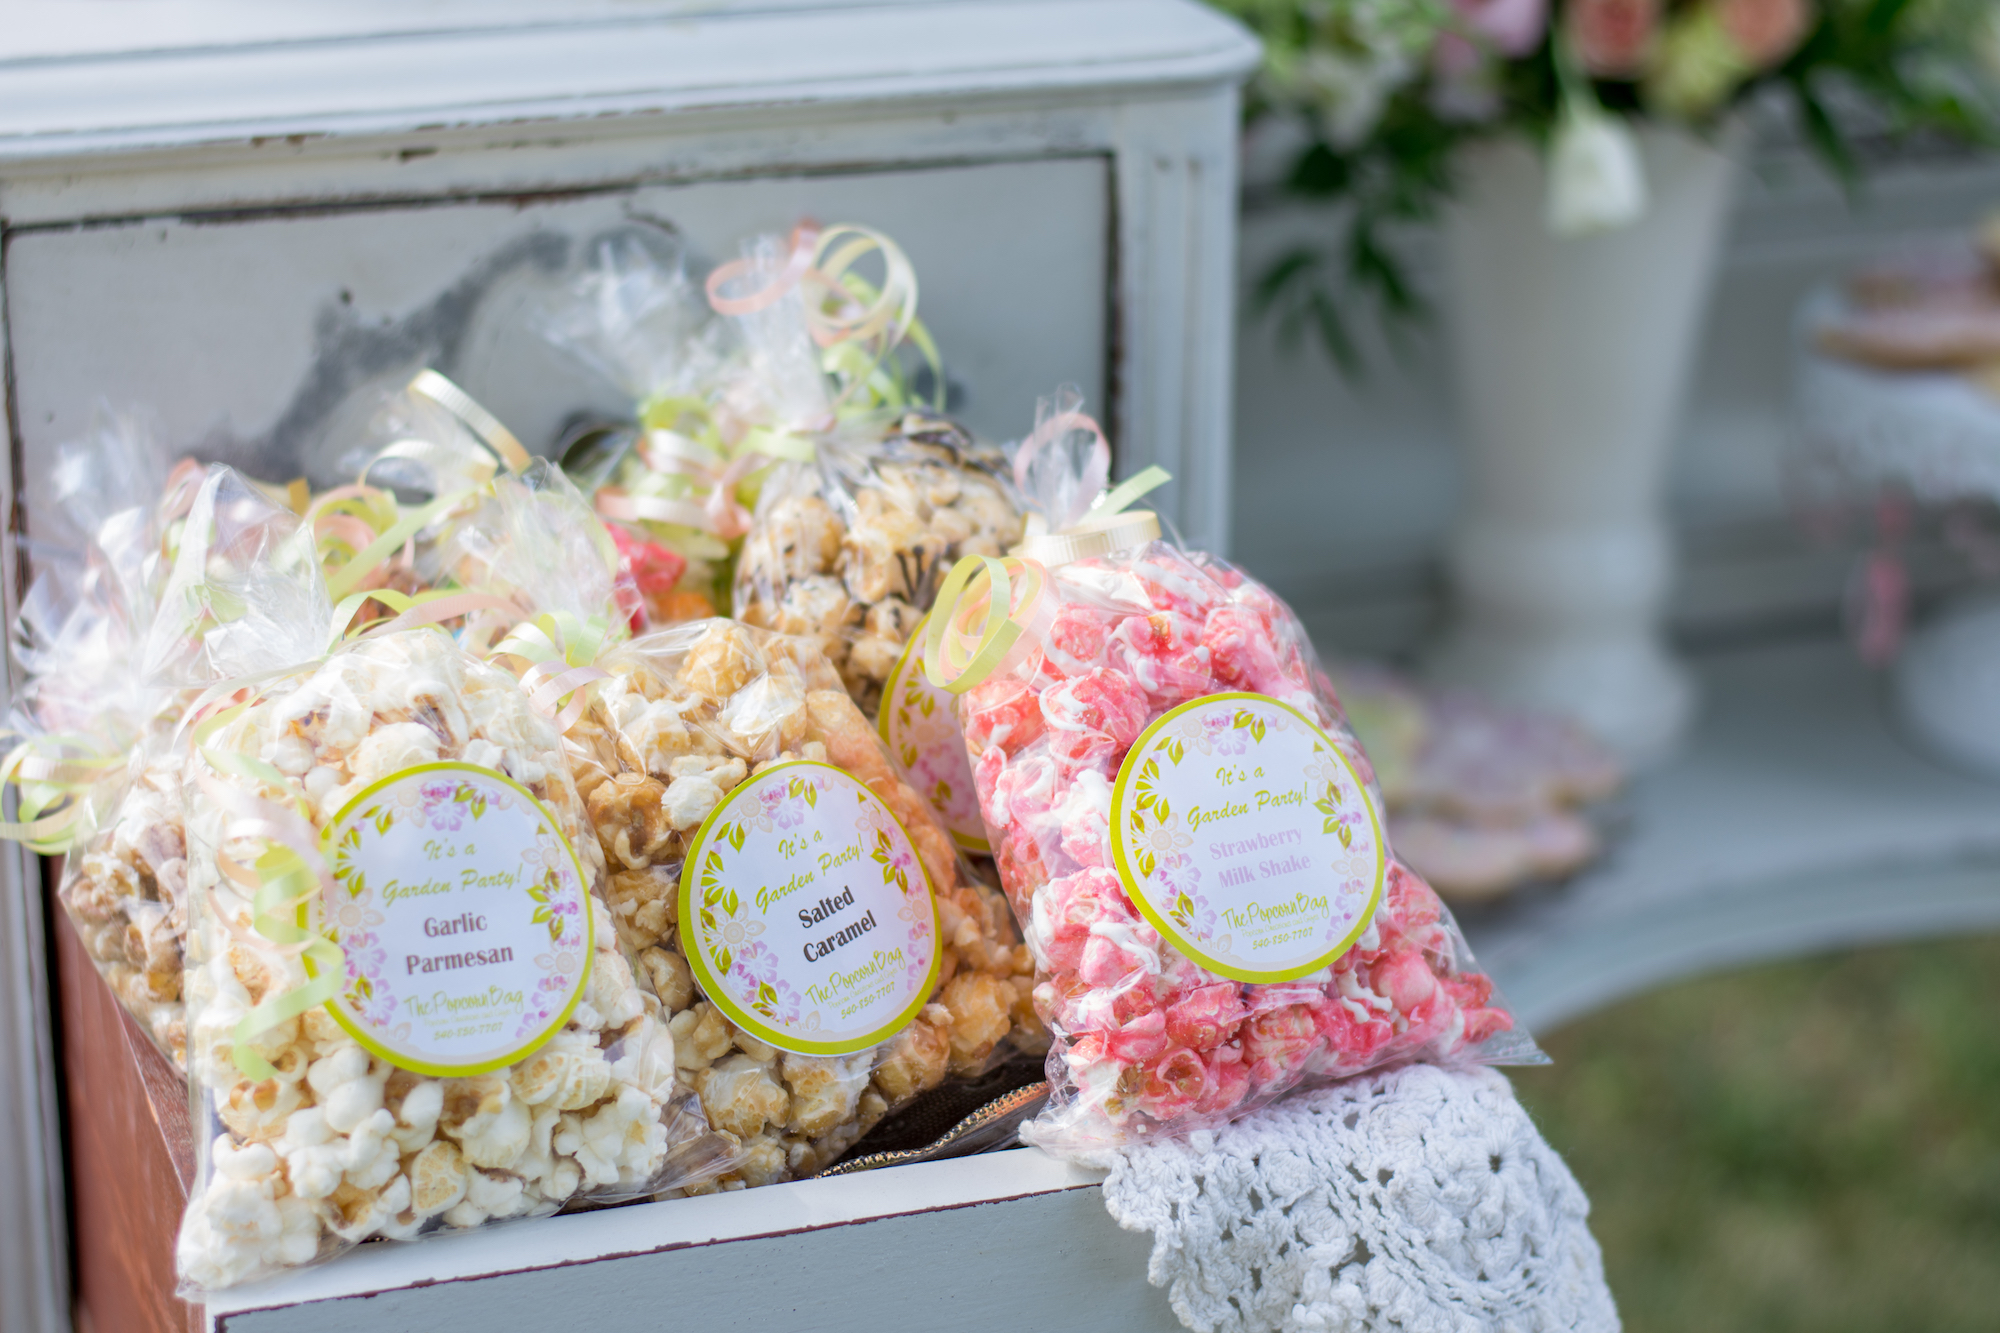 Vintage Garden Birthday Party Favors - Flavored Popcorn in Bags with Personalized Labels / Outdoor Garden Party / Present Party Favors in a dresser with opened drawers / photo by Honeysuckle Rose Photography - as seen on www.GiggleHearts.com